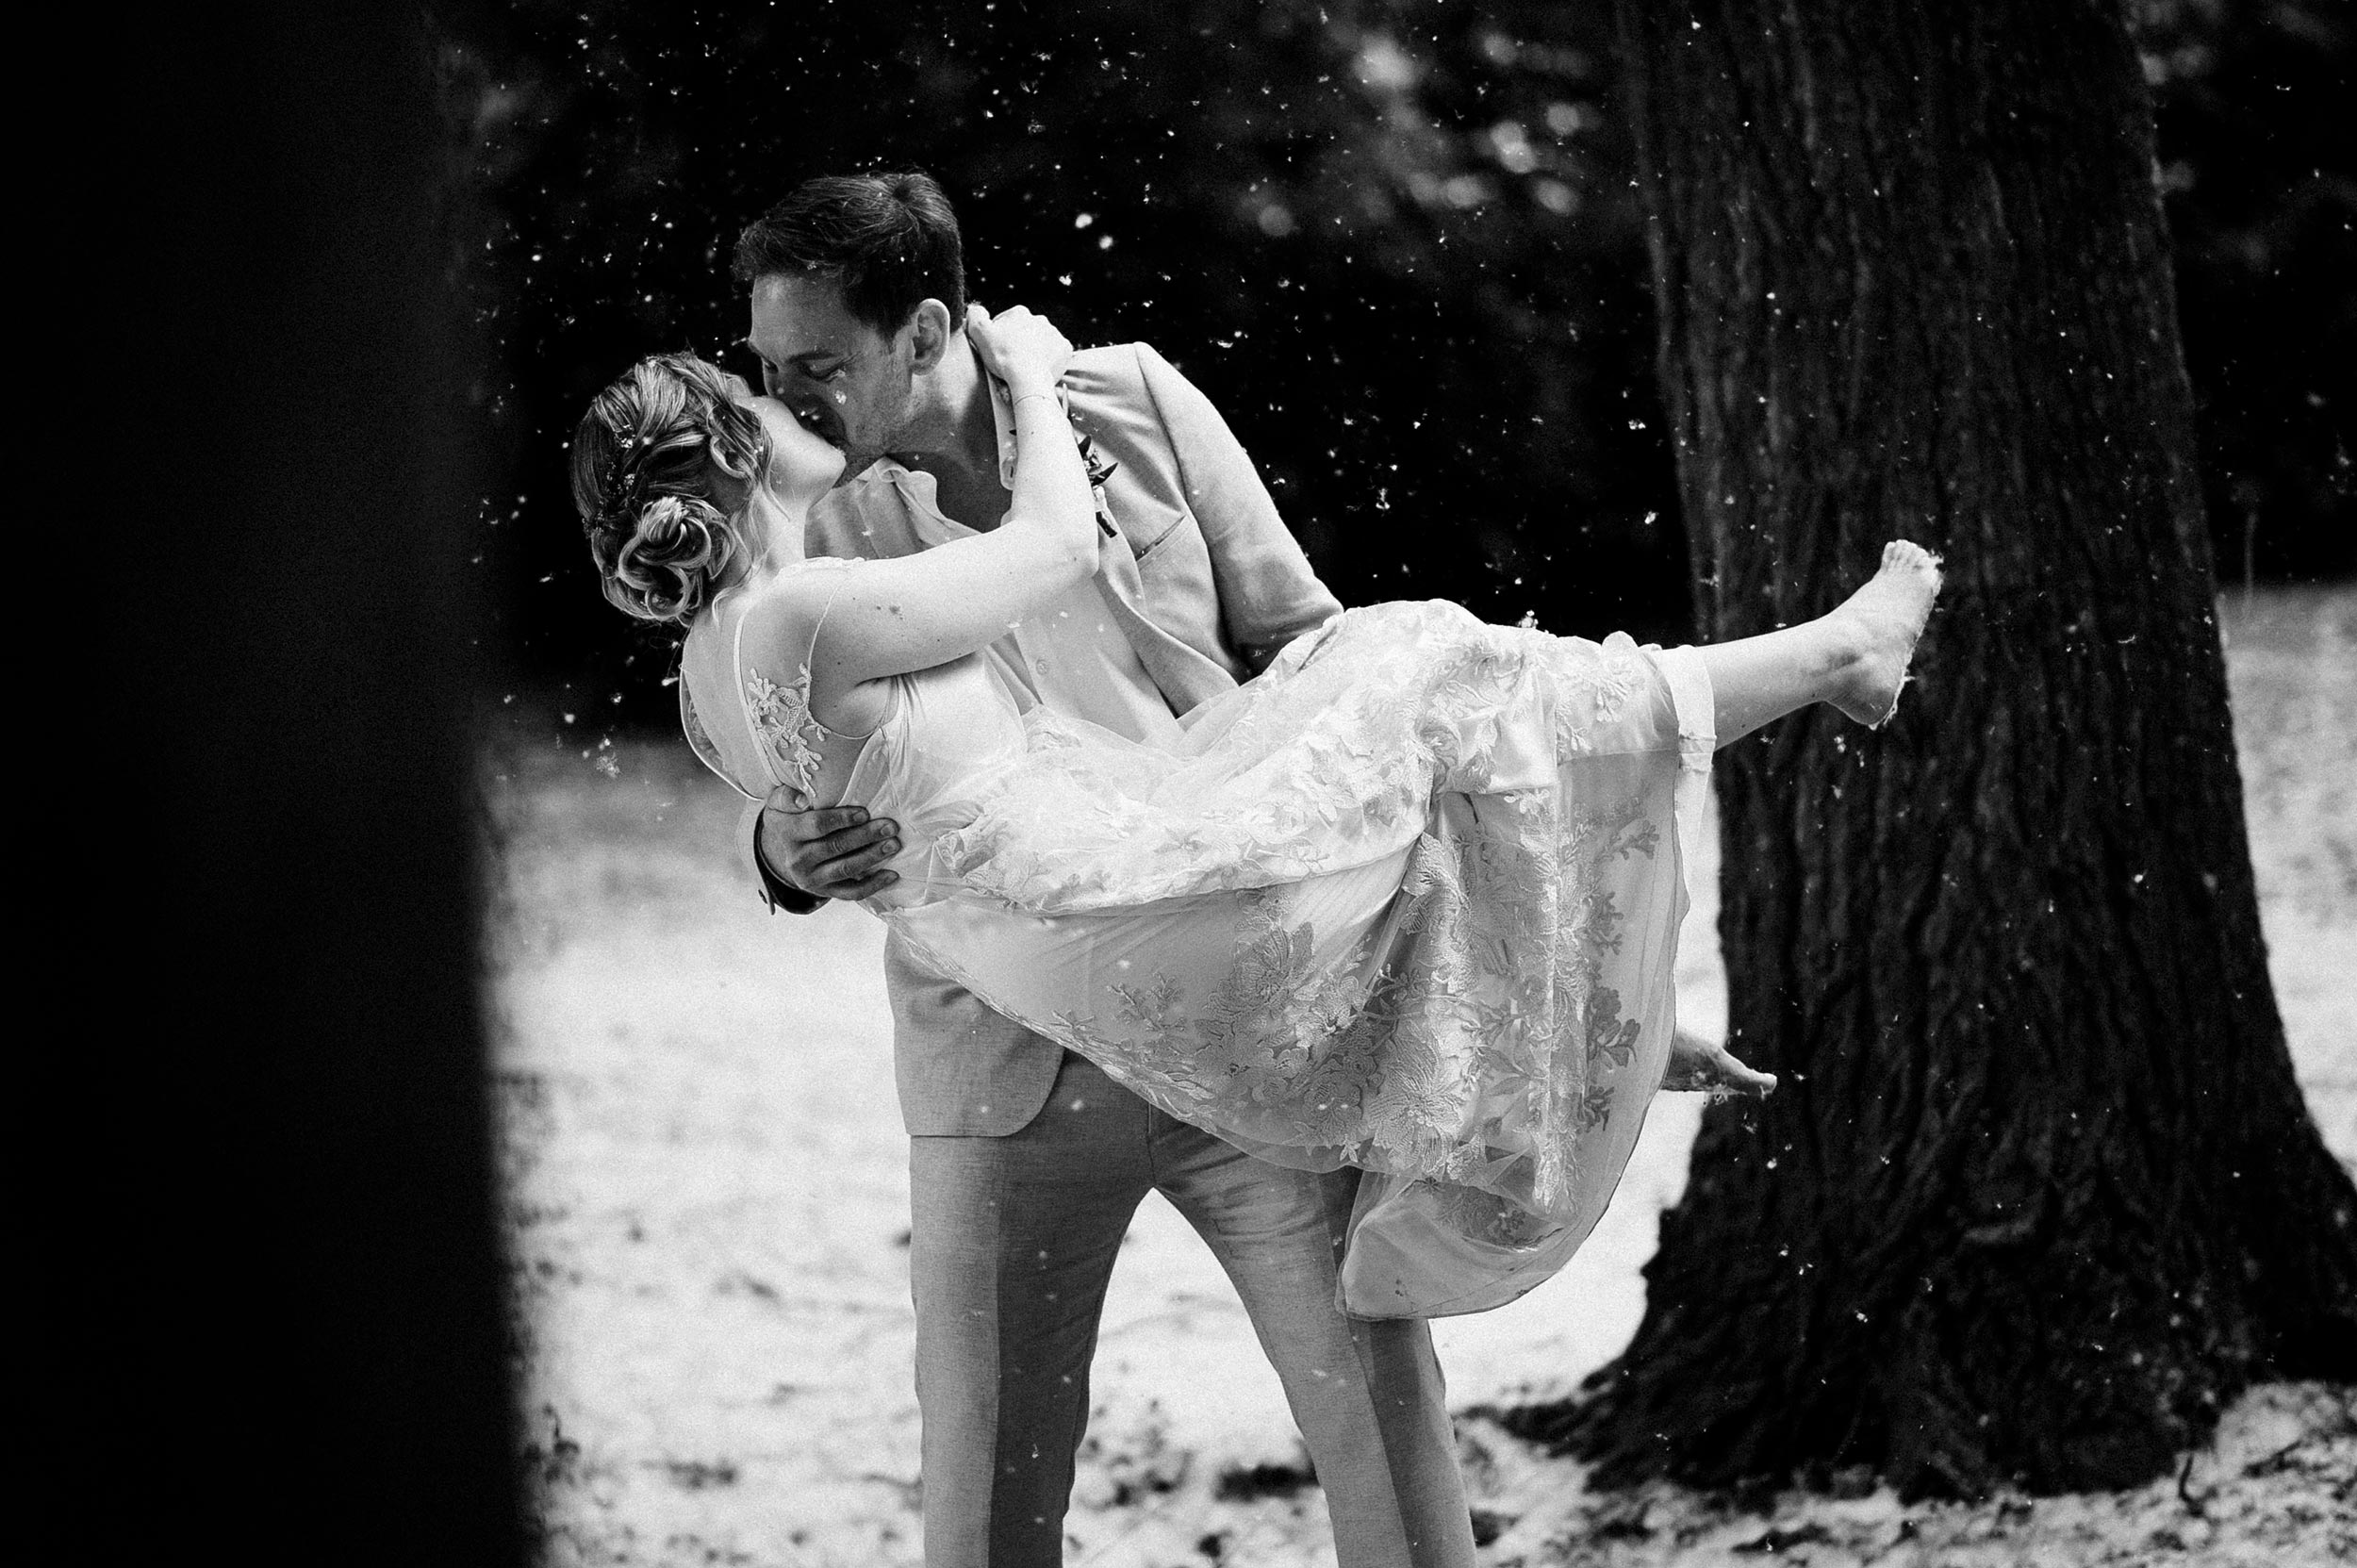 Couple kisses in the snow - Italy Wedding Photographer Alessandro Avenali